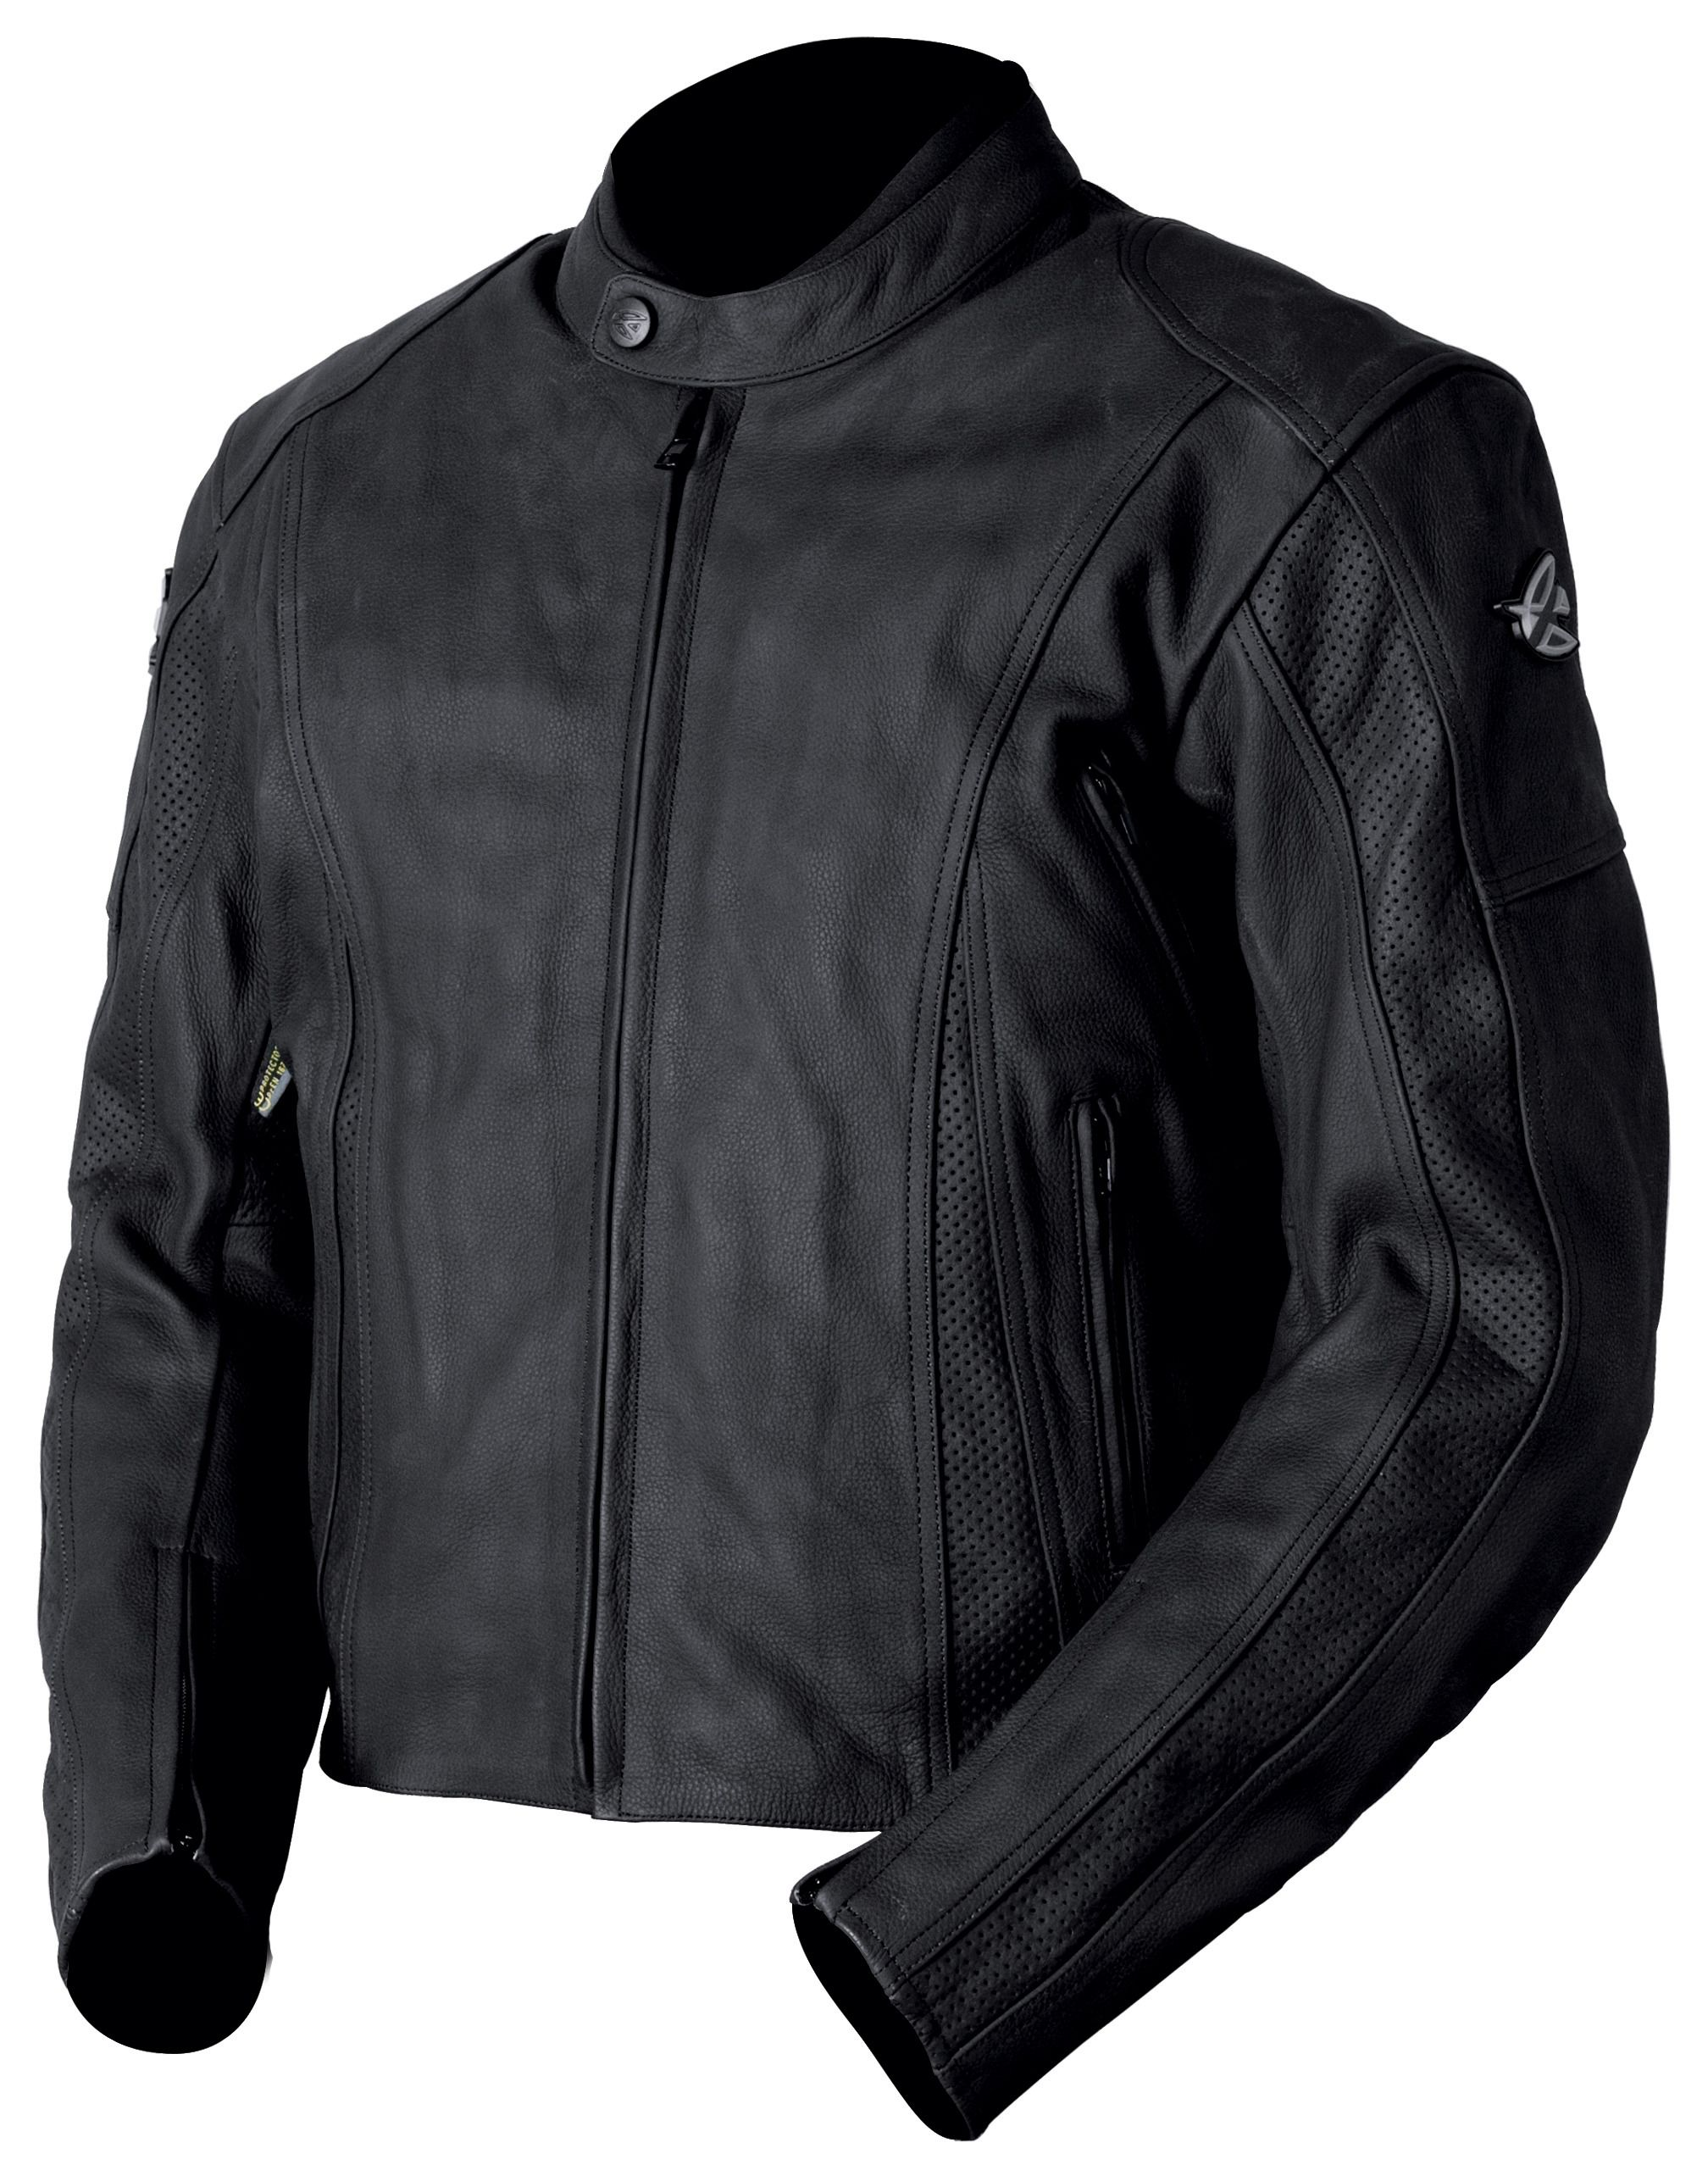 AGV Sport Canyon Perforated Leather Jacket - RevZilla